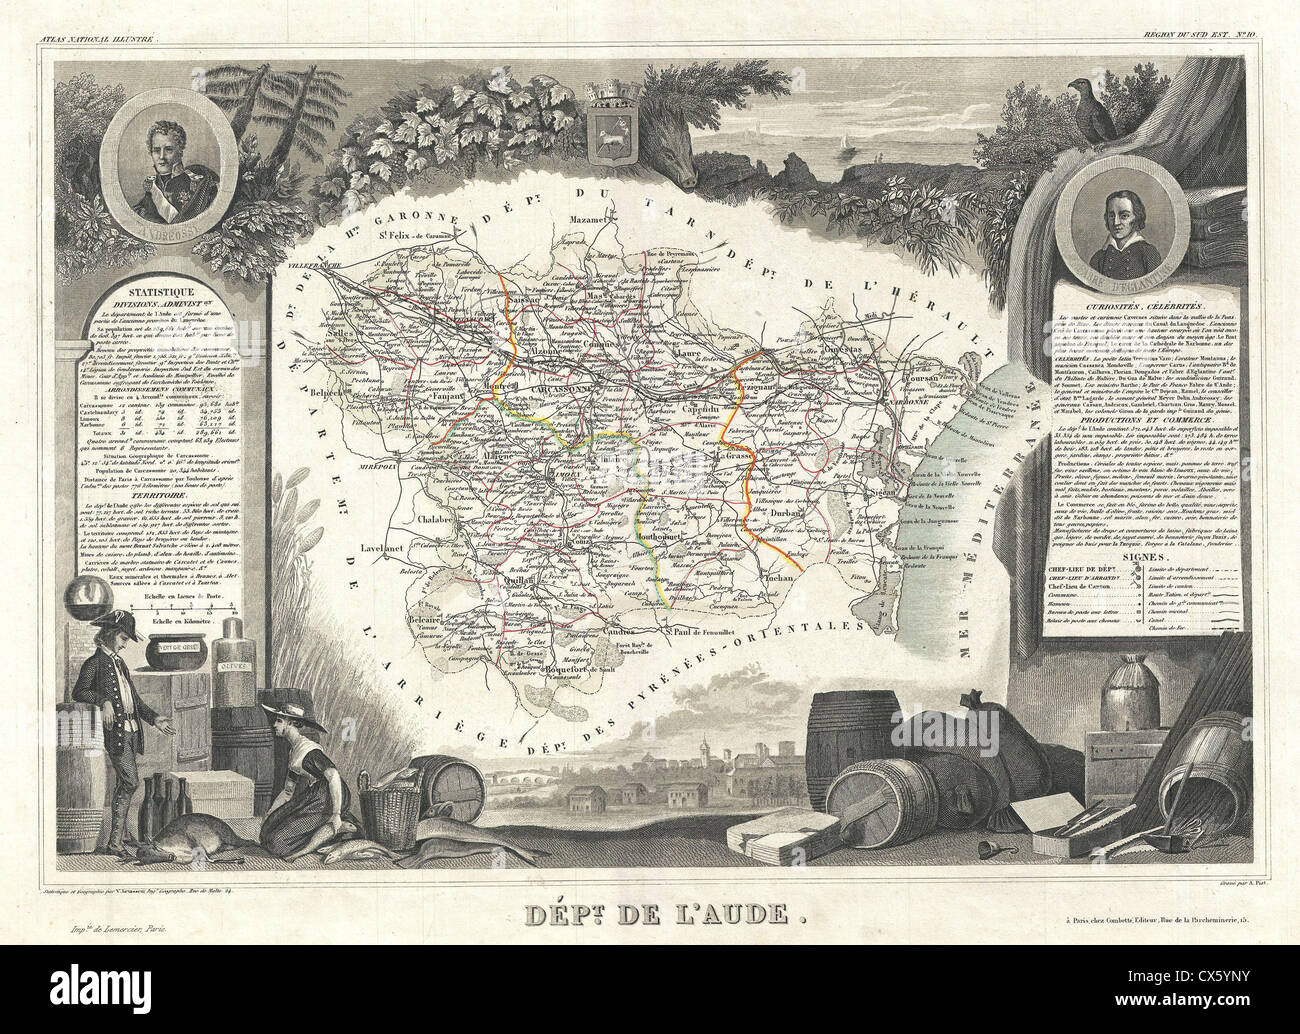 1852 Levasseur Map of the Department L'Aude, France - Stock Image